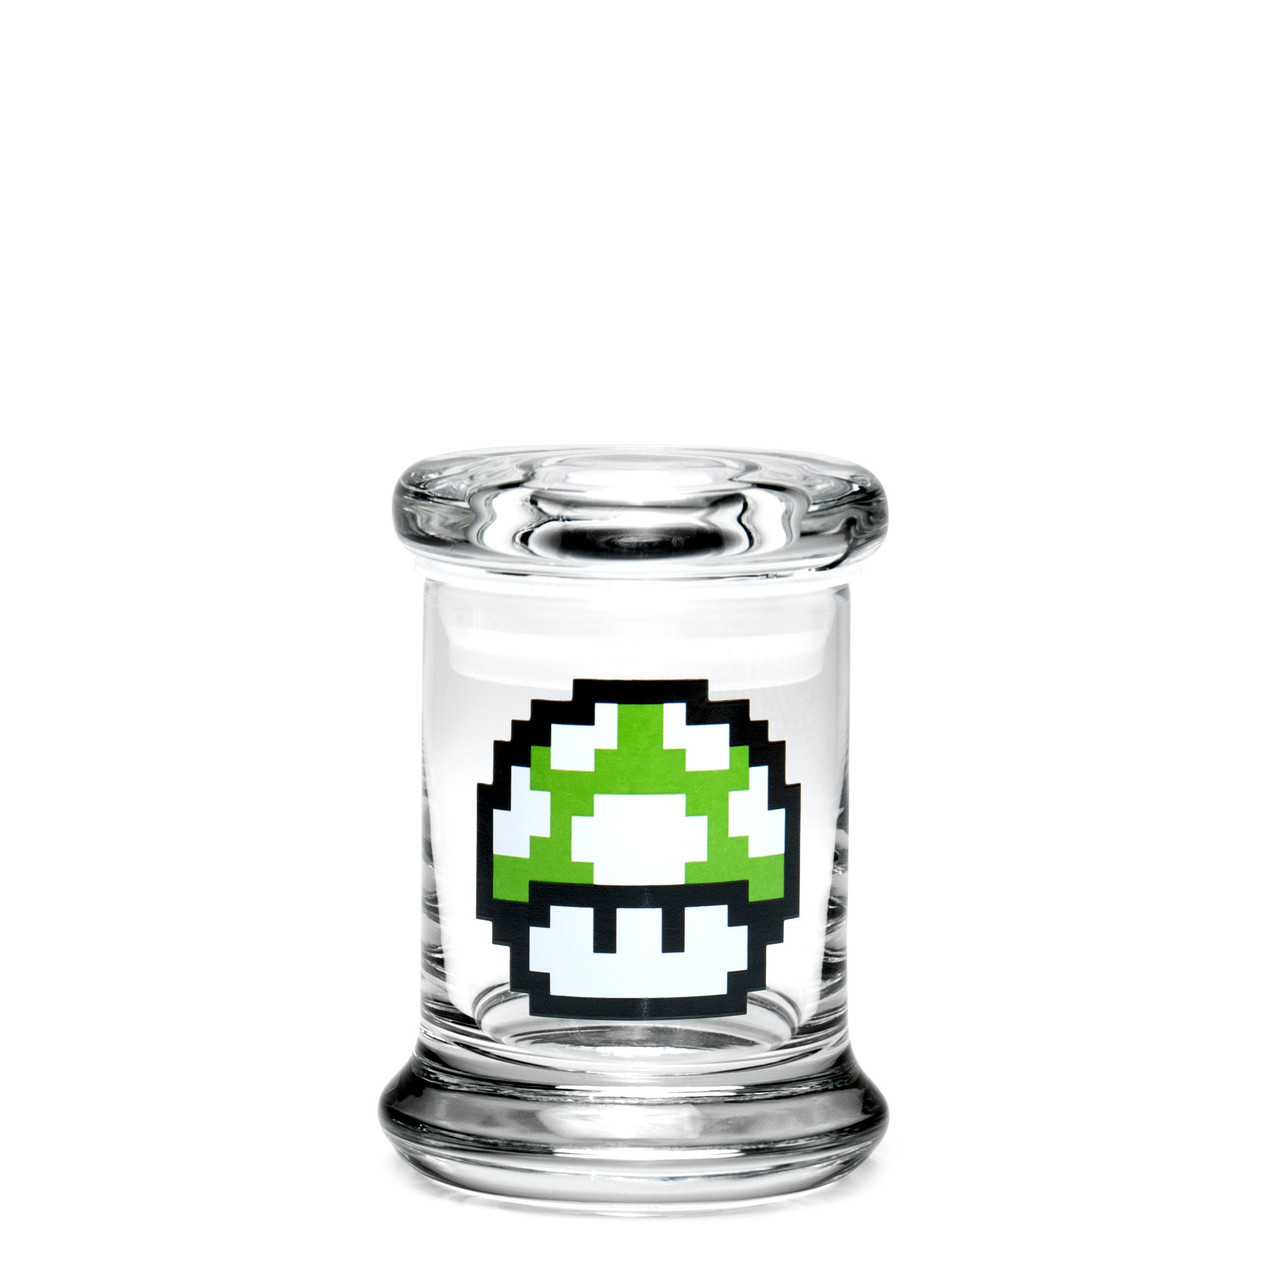 420 Science Extra Small Pop-Top Jar - 1-Up Mushroom